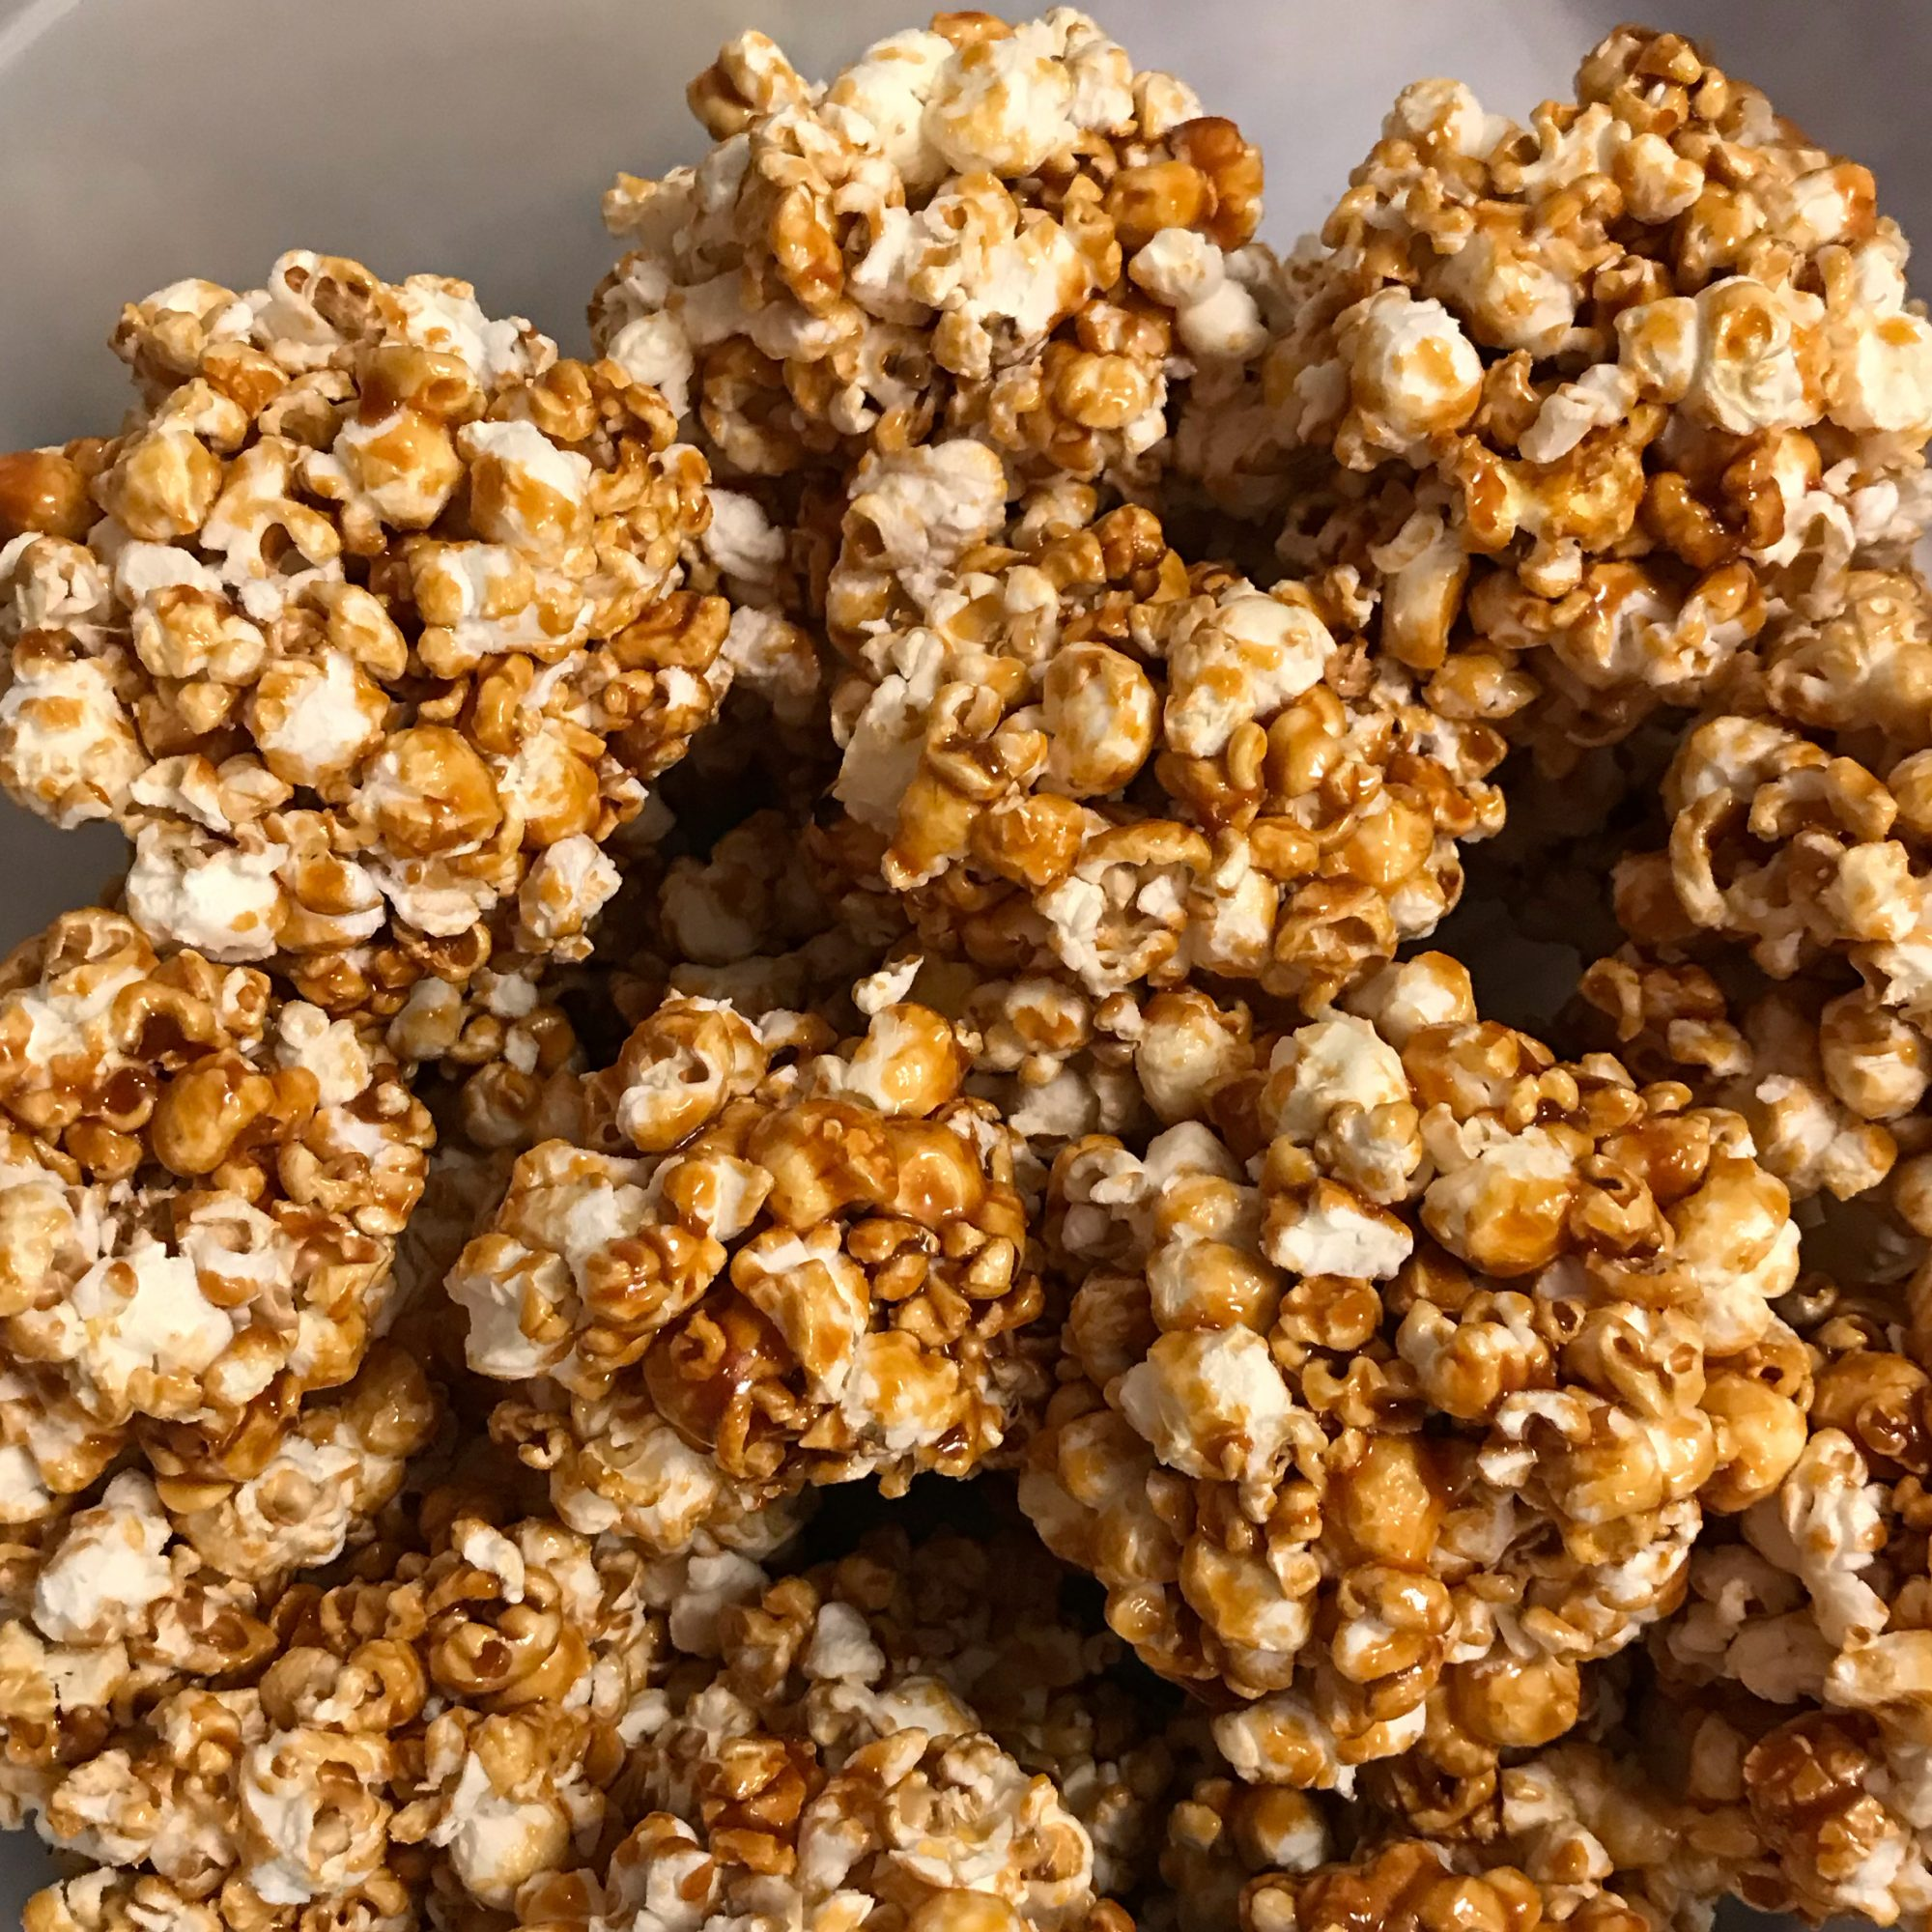 Favorite Popcorn Balls on a grey background